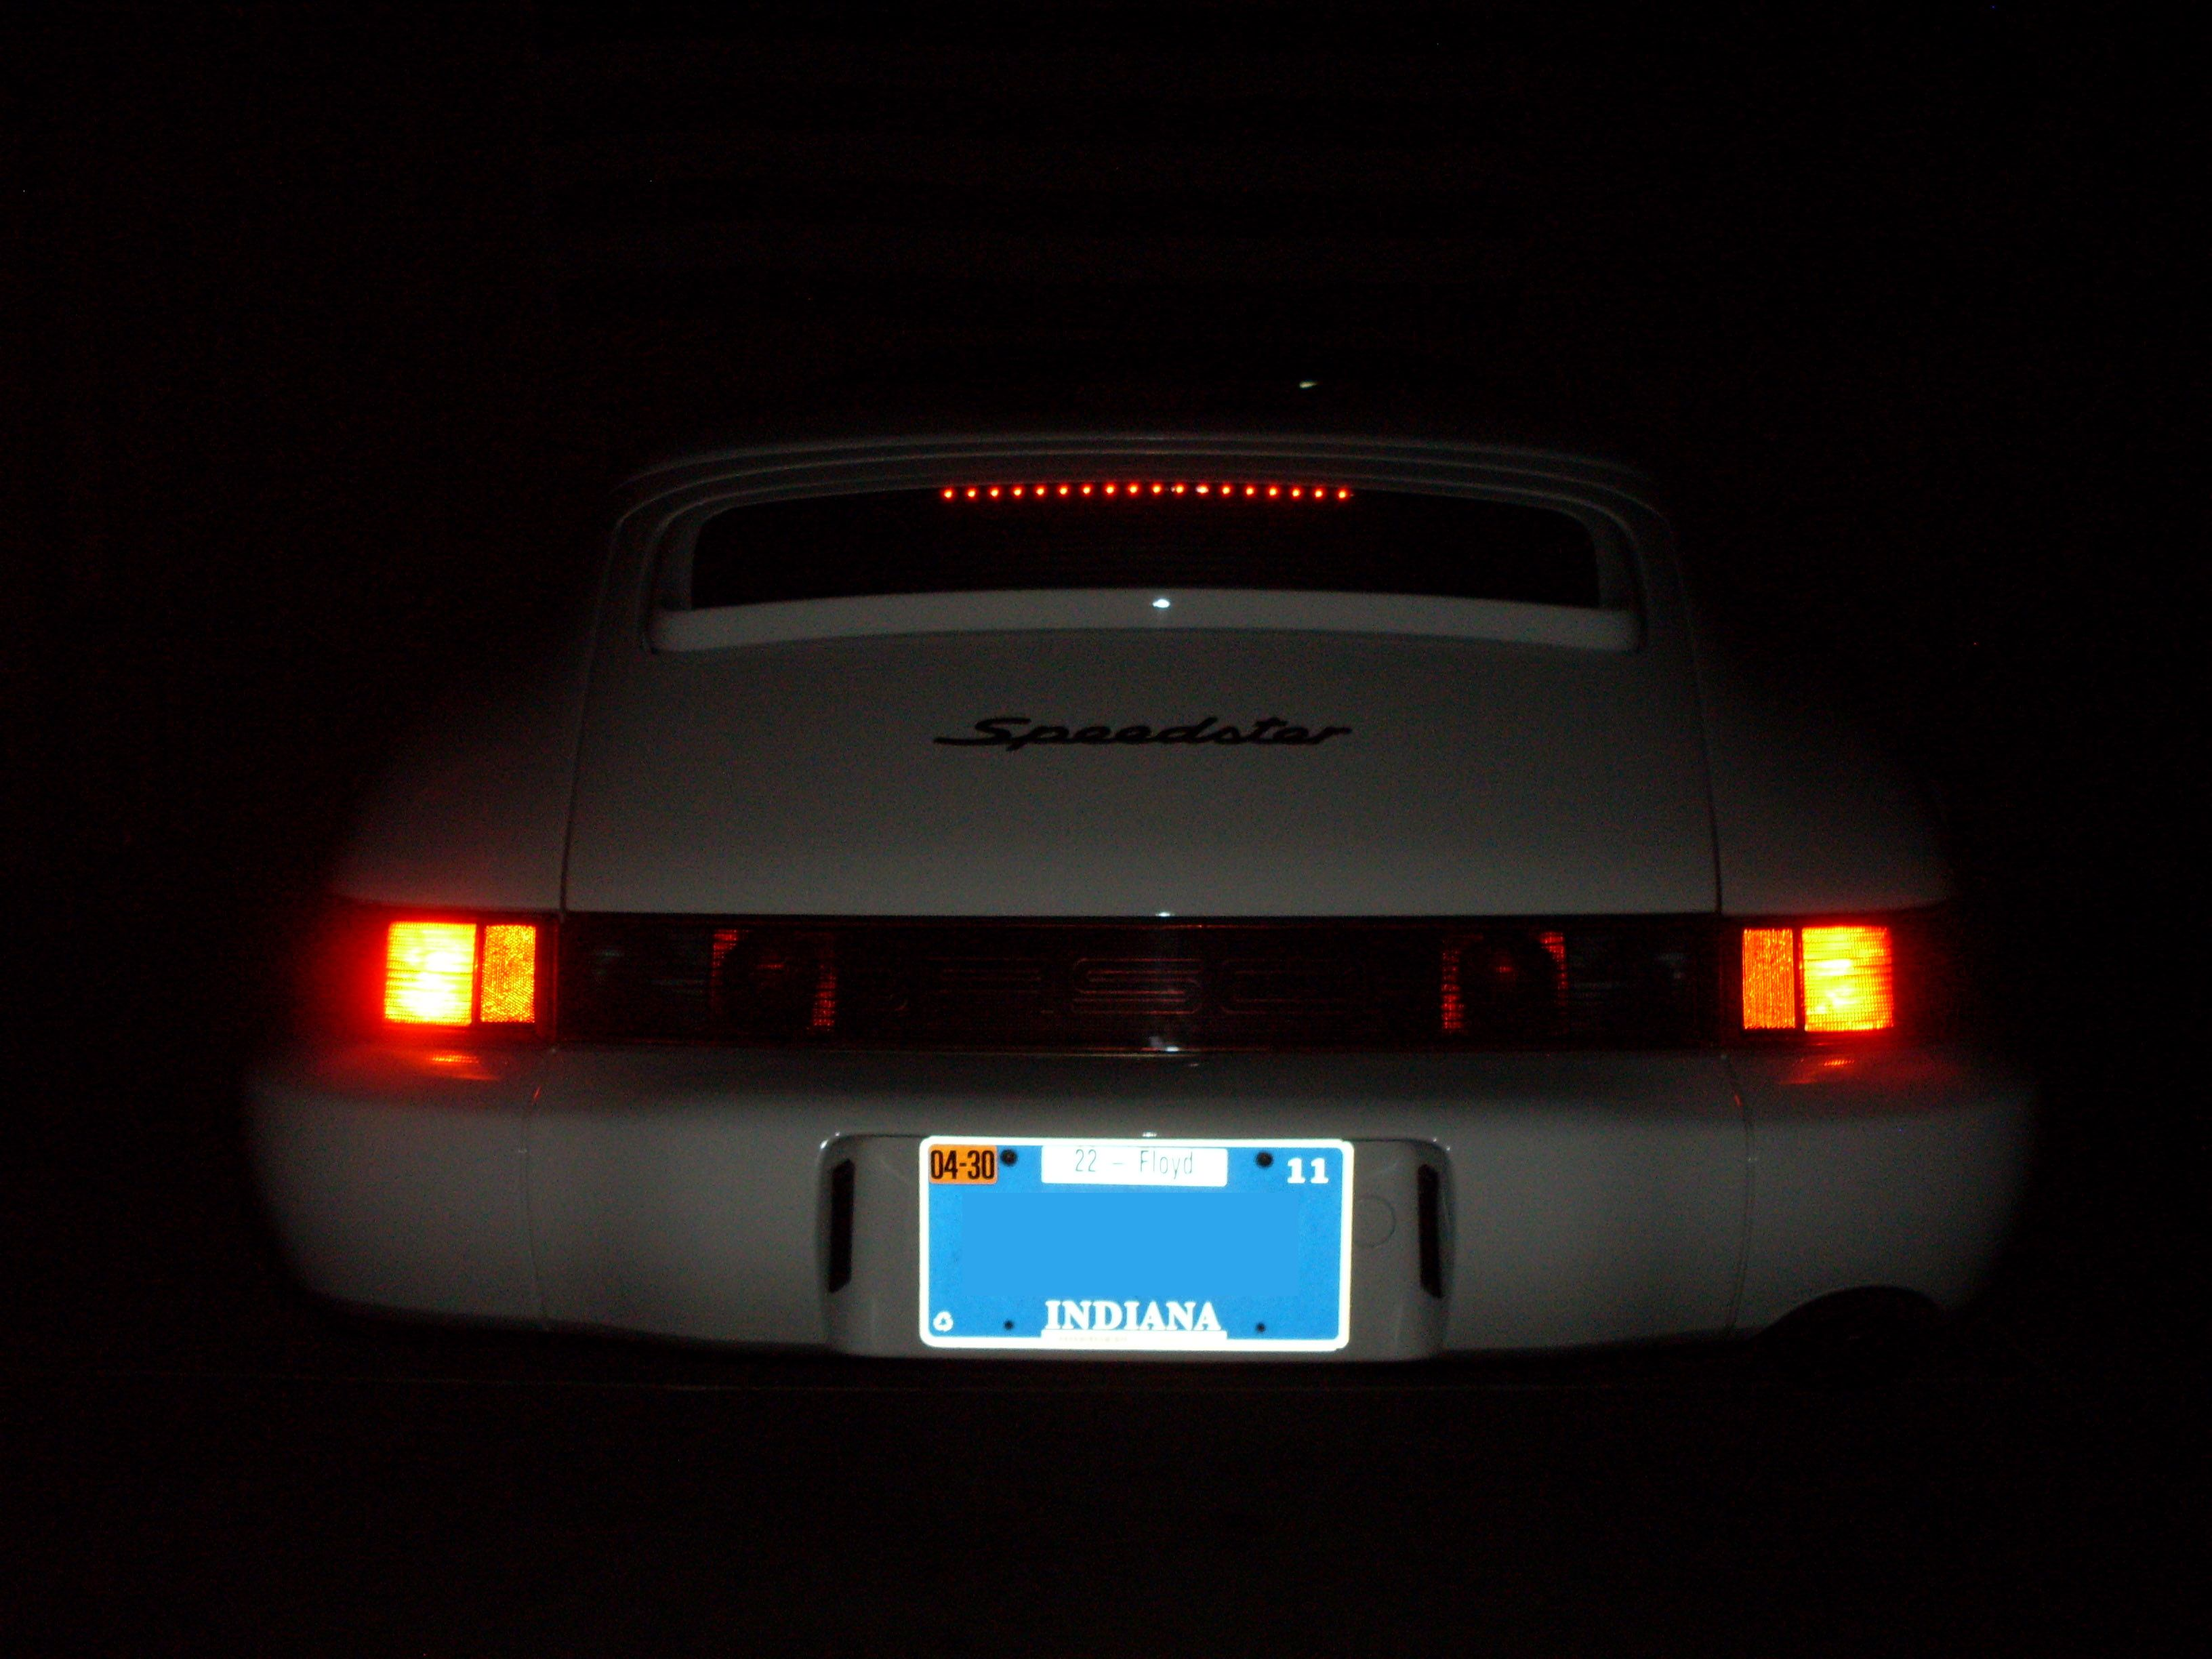 Cabriolet Third Brake Light Et Removal Yes Or No And